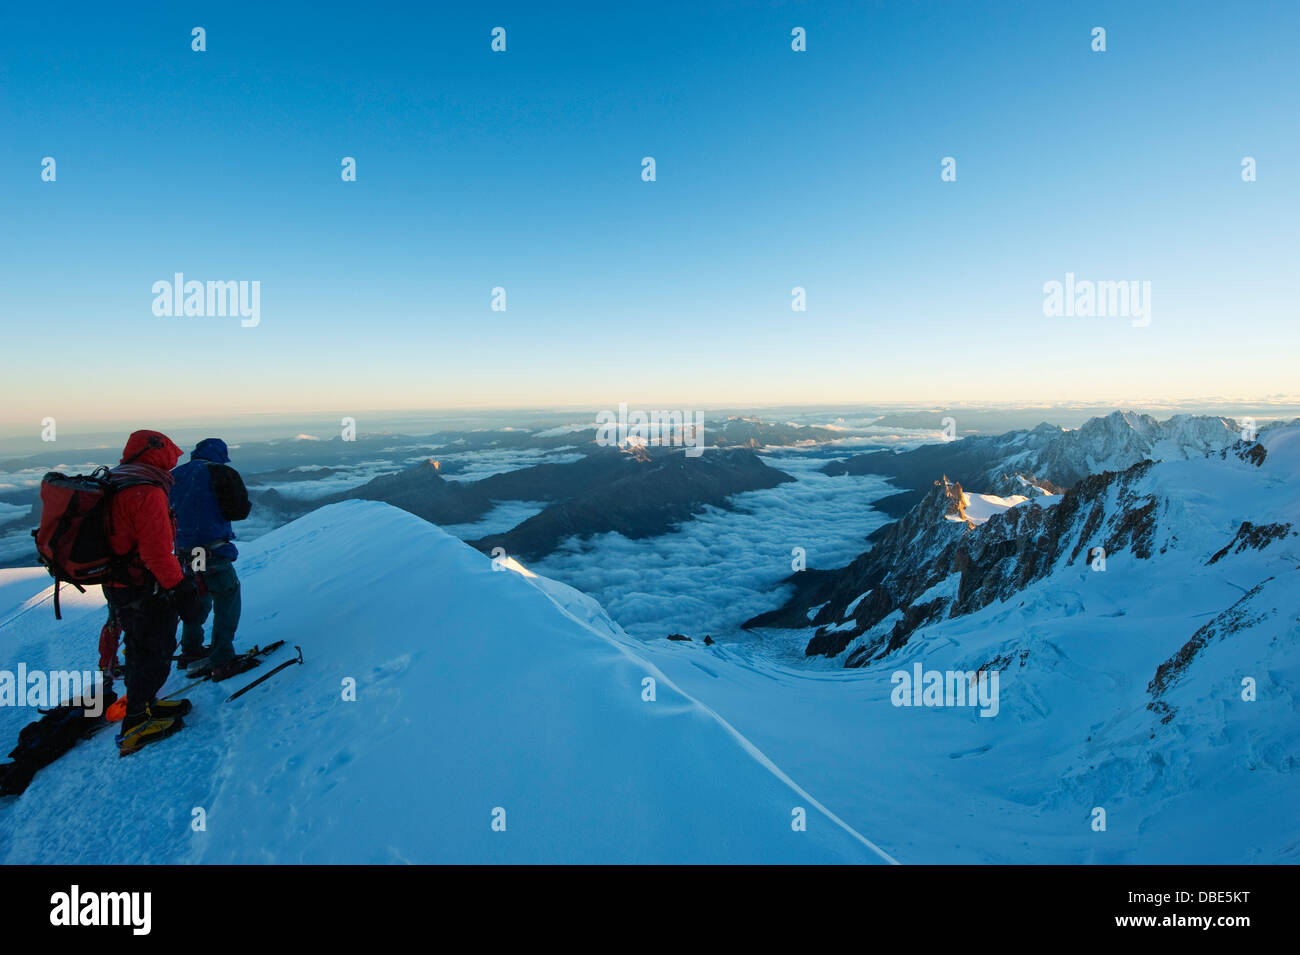 view to Aiguille du Midi cable car station, Mont Blanc range, Chamonix, France, Europe - Stock Image